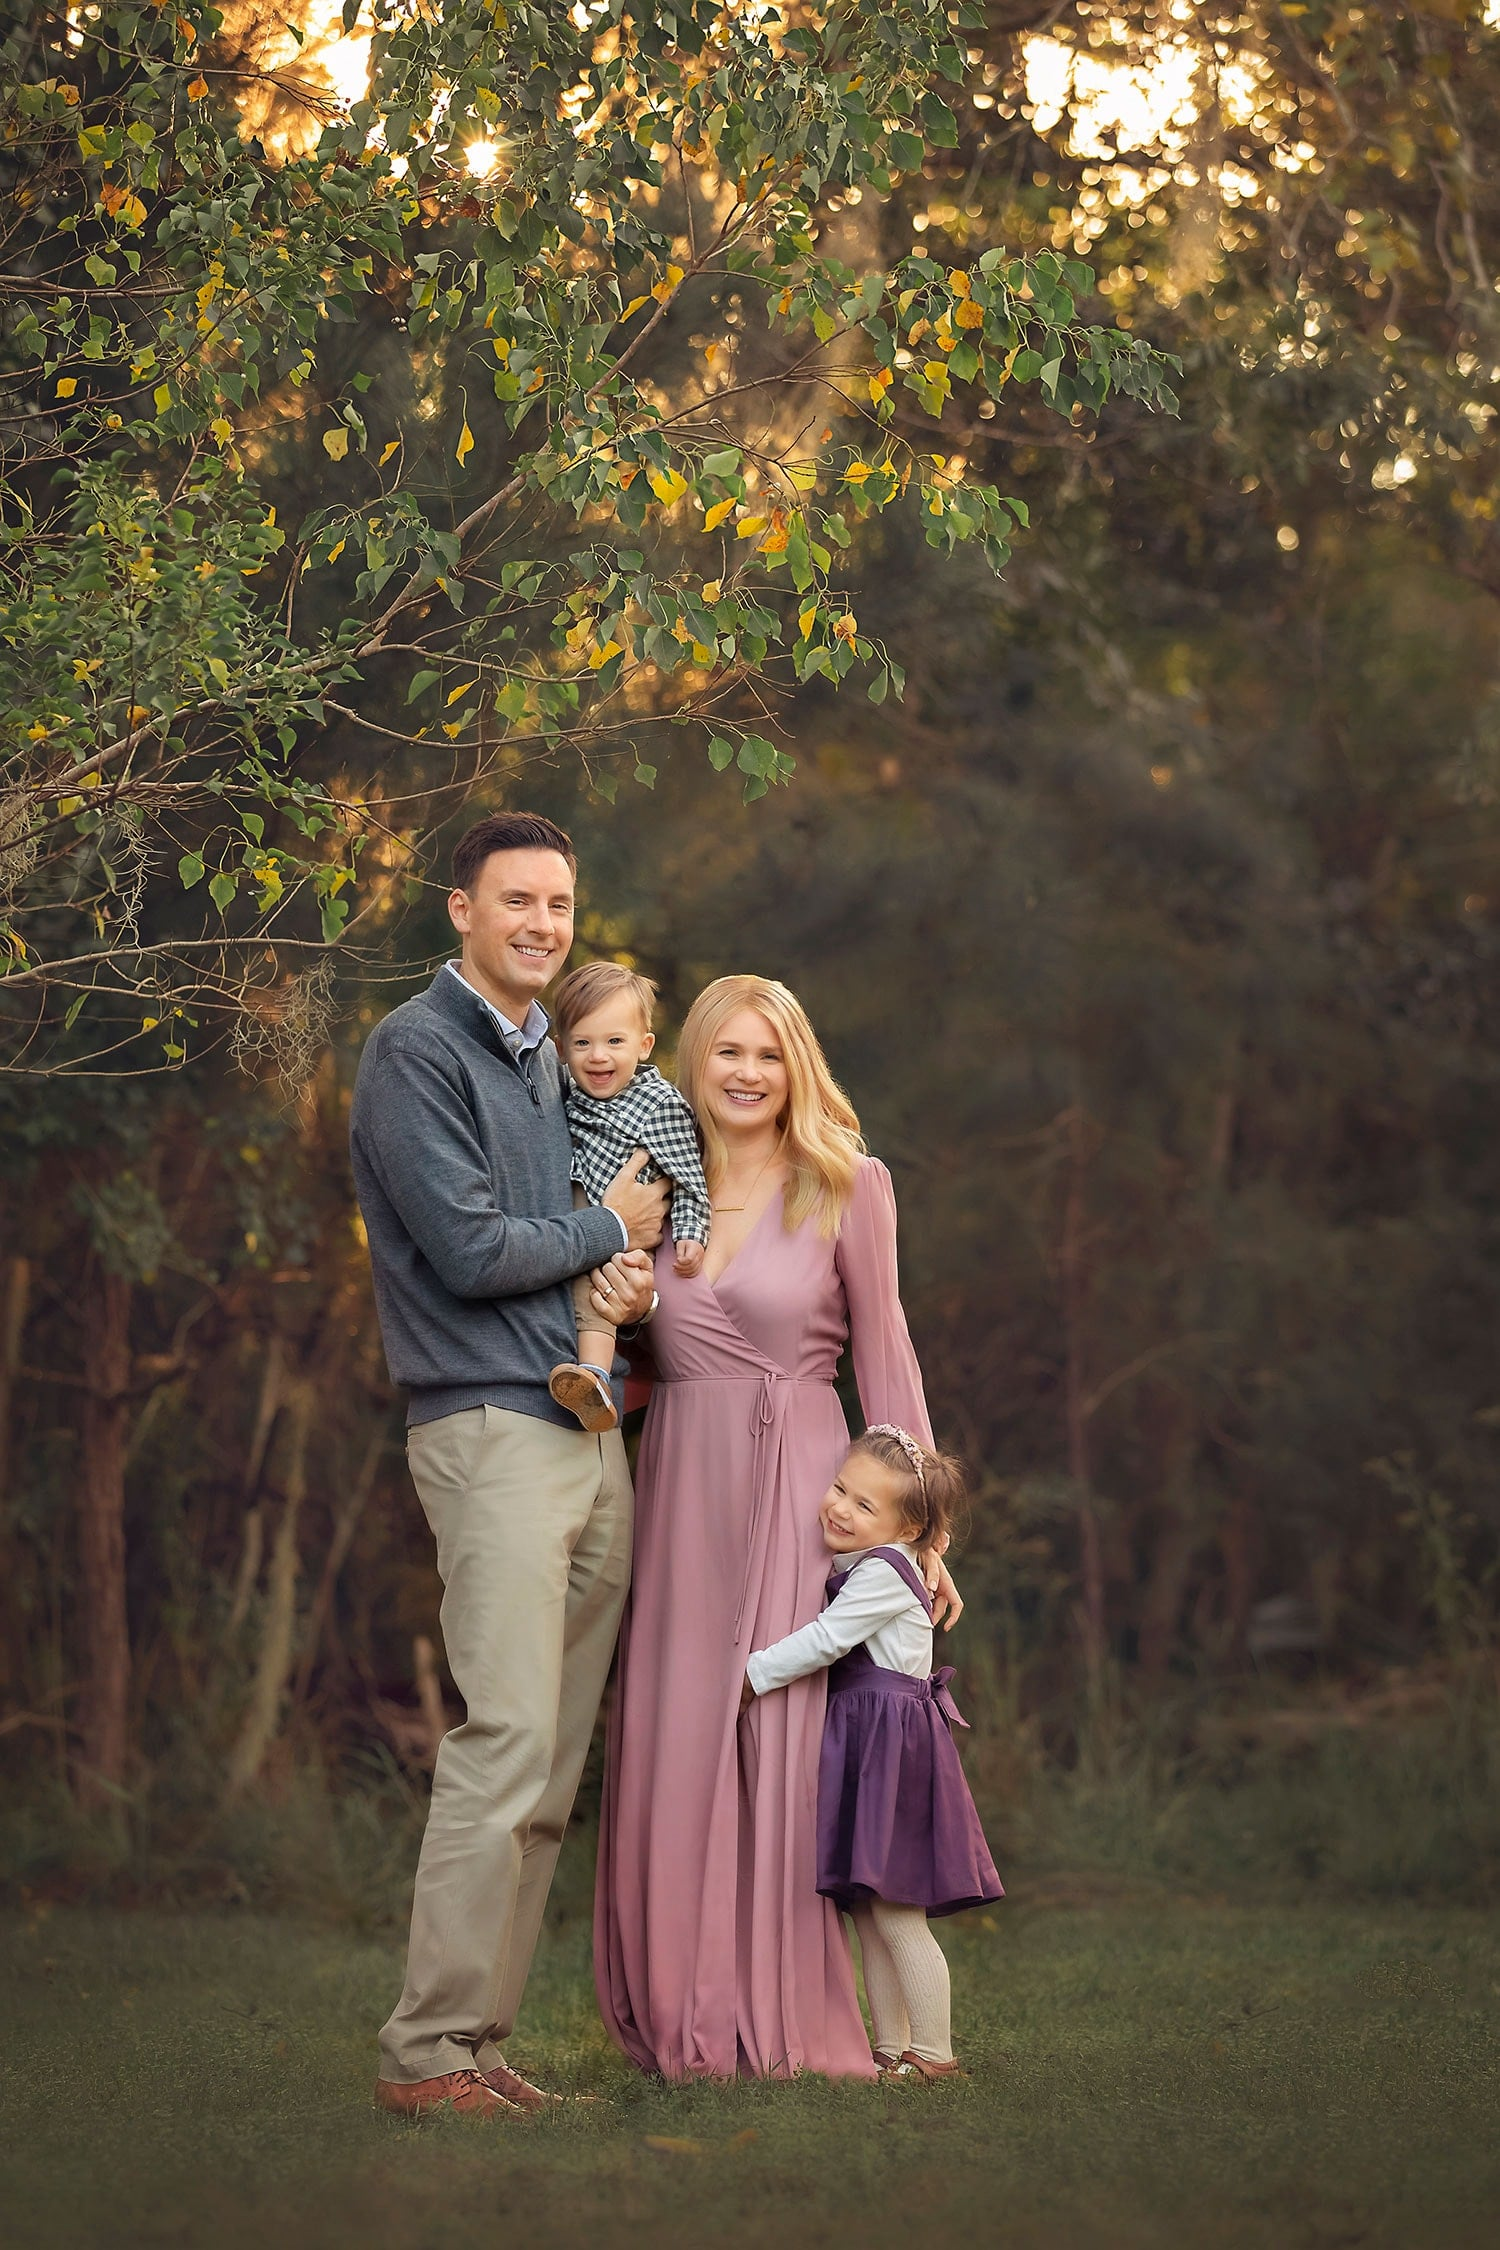 Stunning fall family photo by Annie Whitaker Photography